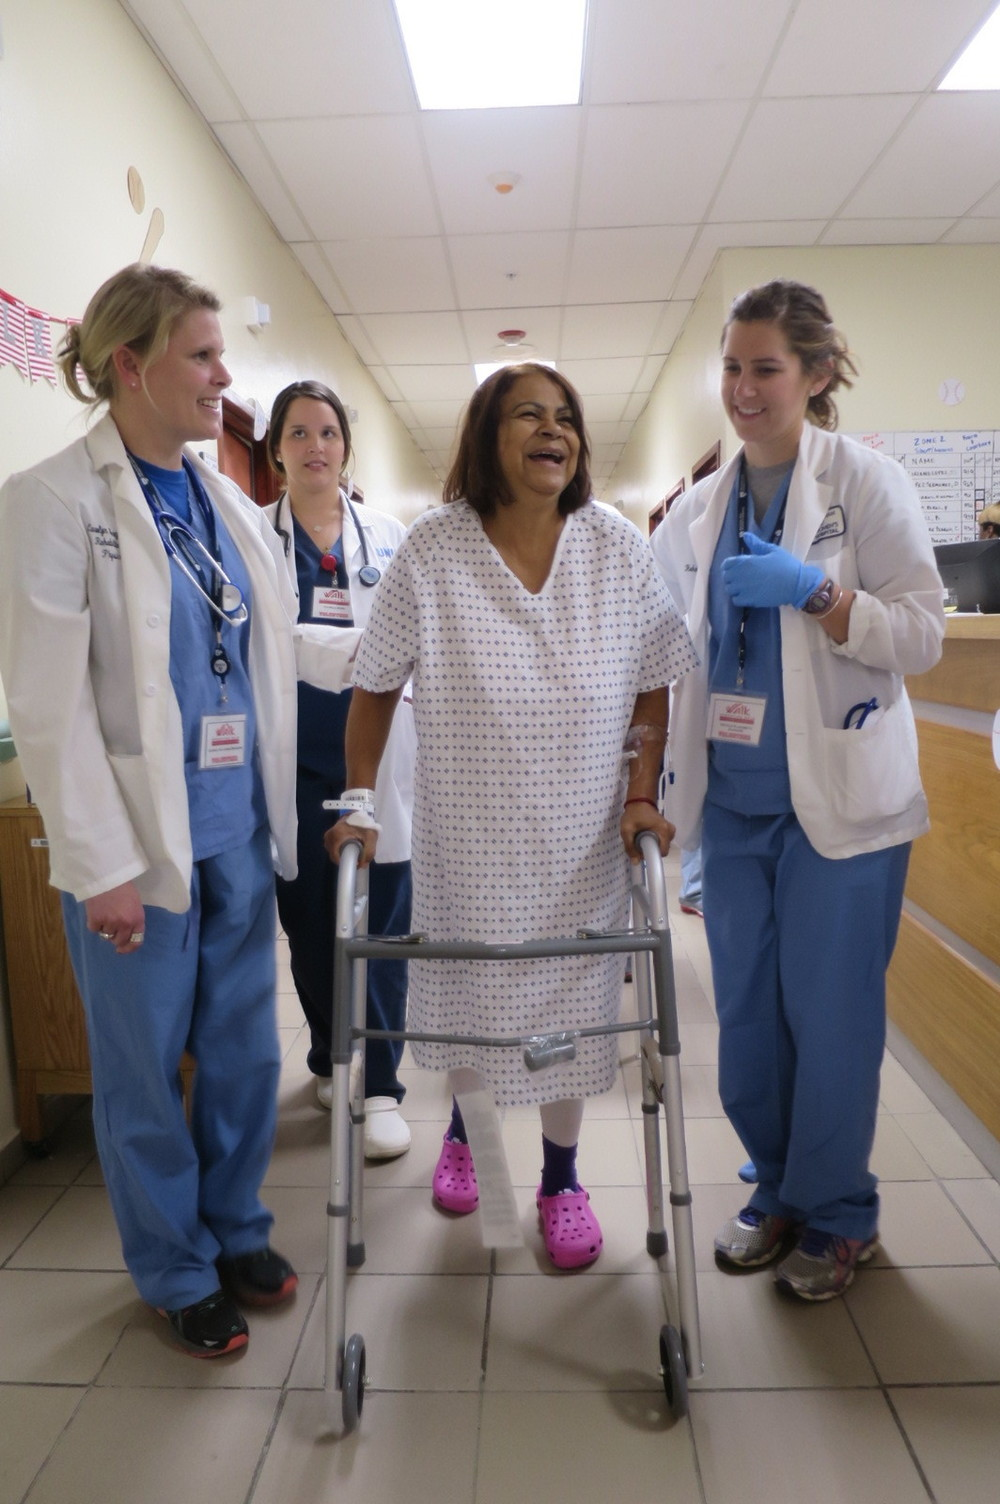 Carolyn Beagan, DPT (left) and Nicole Durand, DPT (right) help a patient ambulate who had both knees replaced 24 hours previously